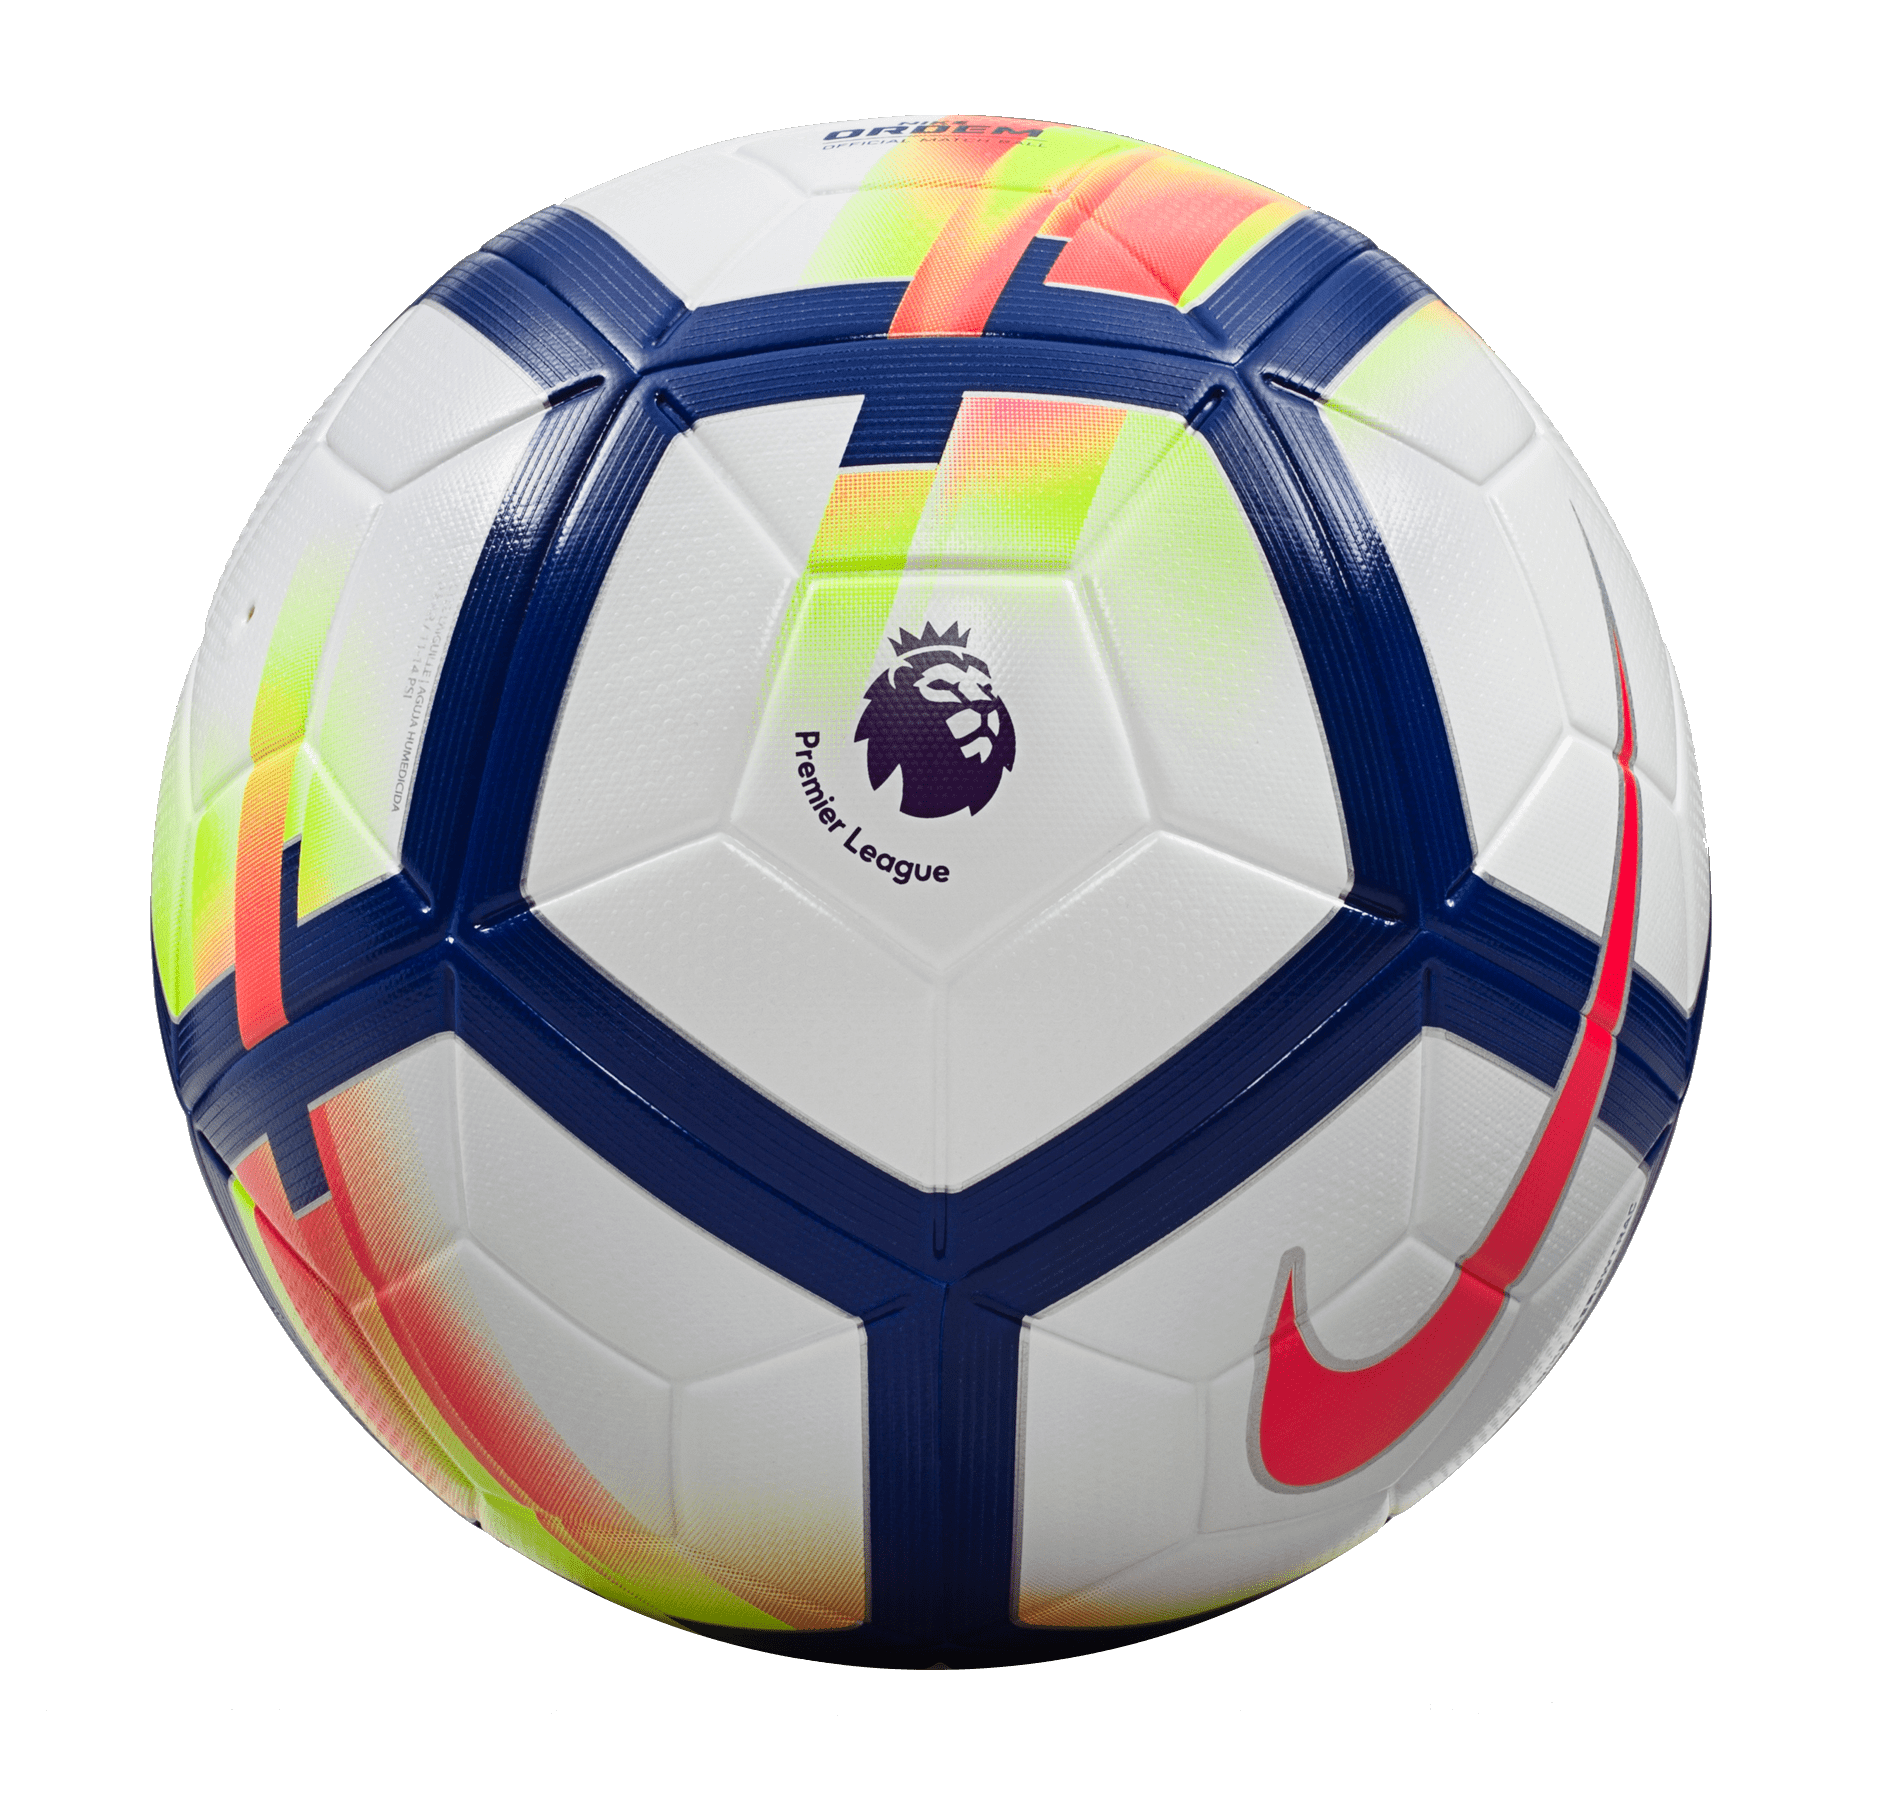 Side view of football cleat clipart image black and white download For all the latest Premier League news, visit the official website ... image black and white download